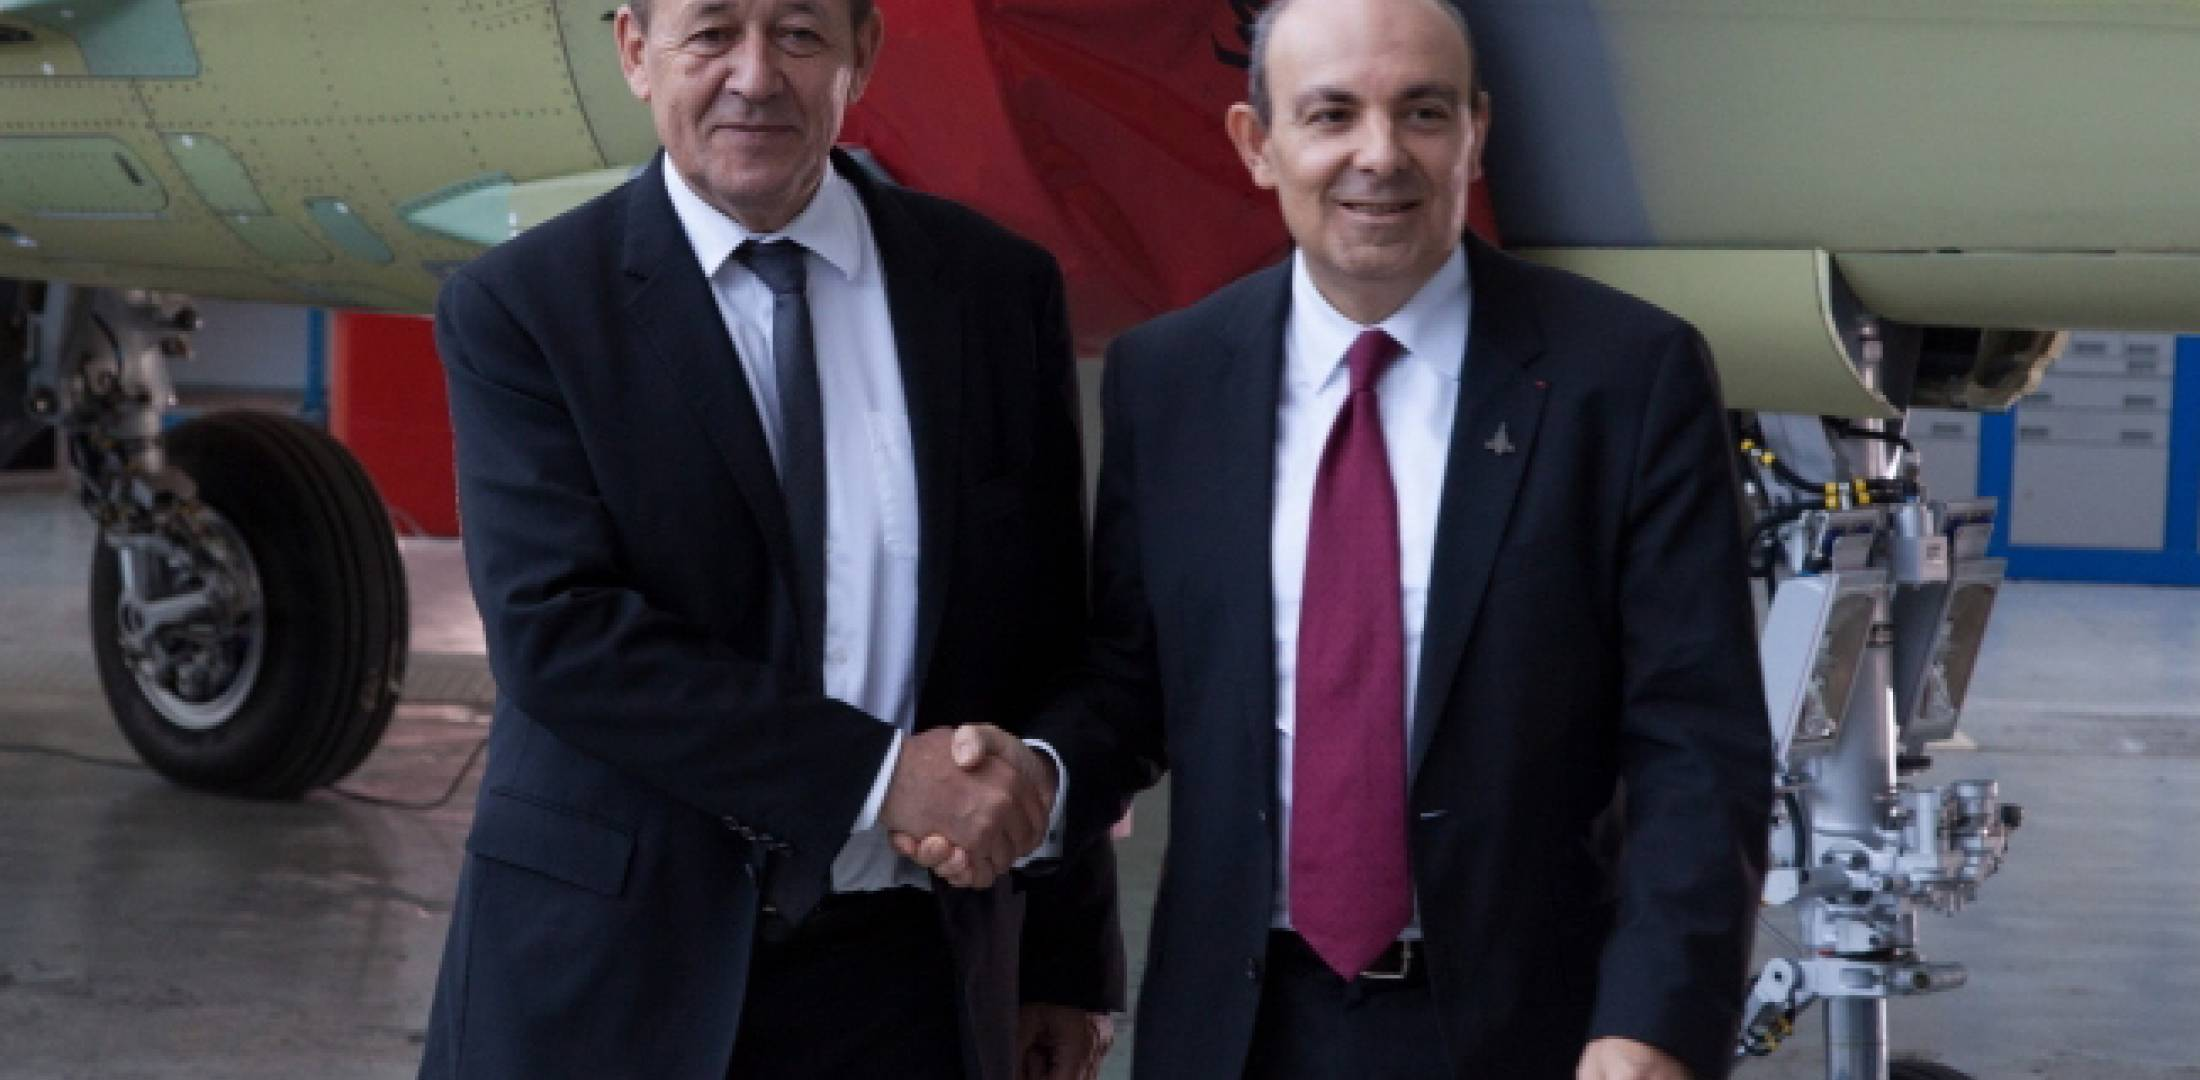 French defense minister Jean-Yves le Drian (left) visited the Rafale final assembly line in Bordeaux to seal the latest upgrade contract with Dassault chairman and CEO Eric Trappier. (Photo: Dassault Aviation)